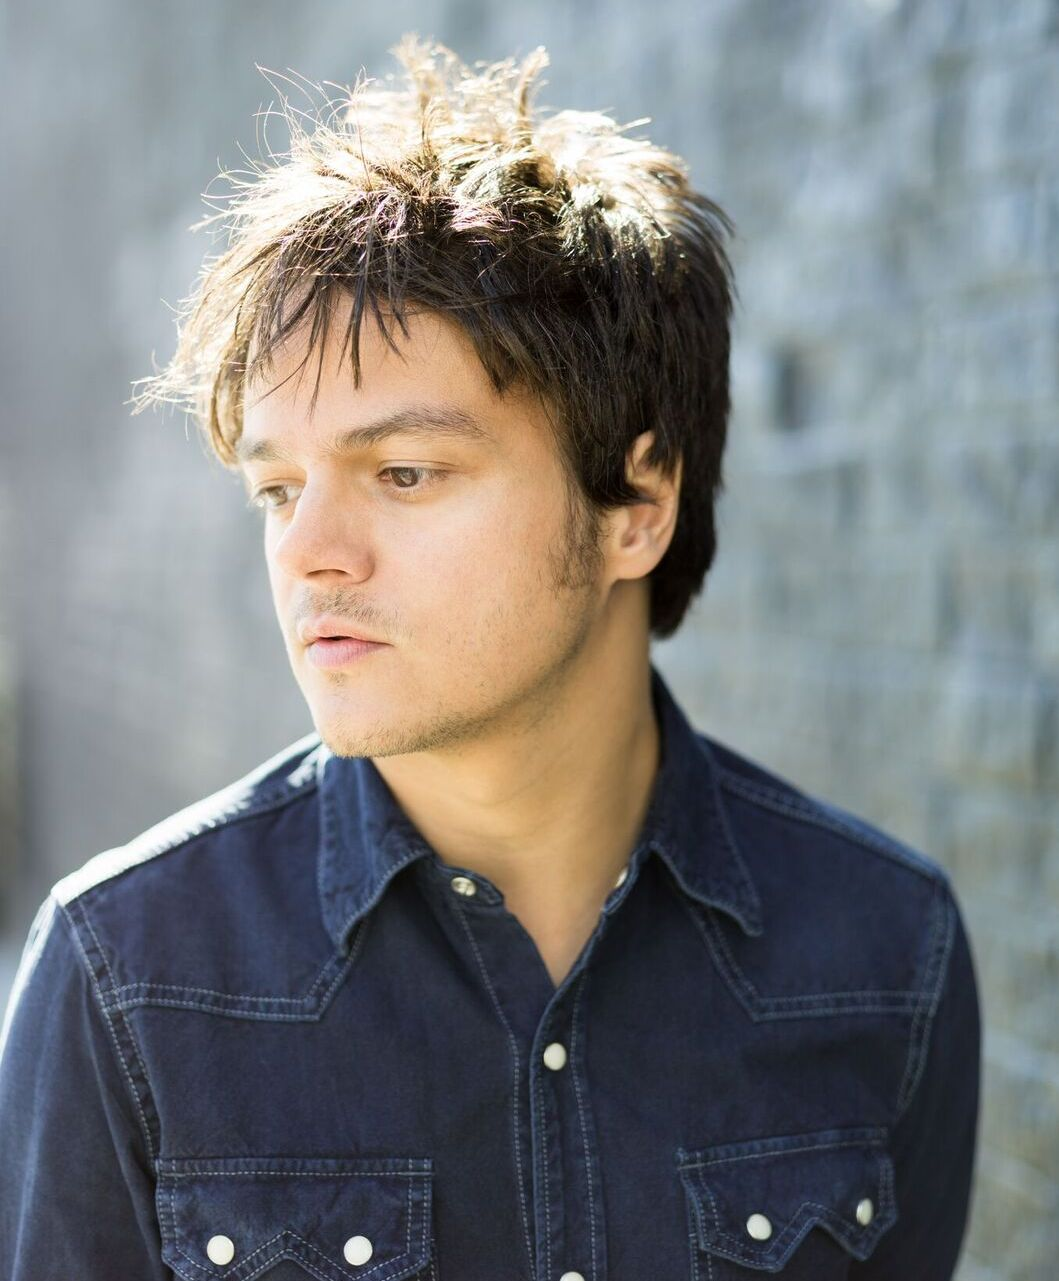 Jamie Cullum will be playing at the Cornbury Music Festival next summer.